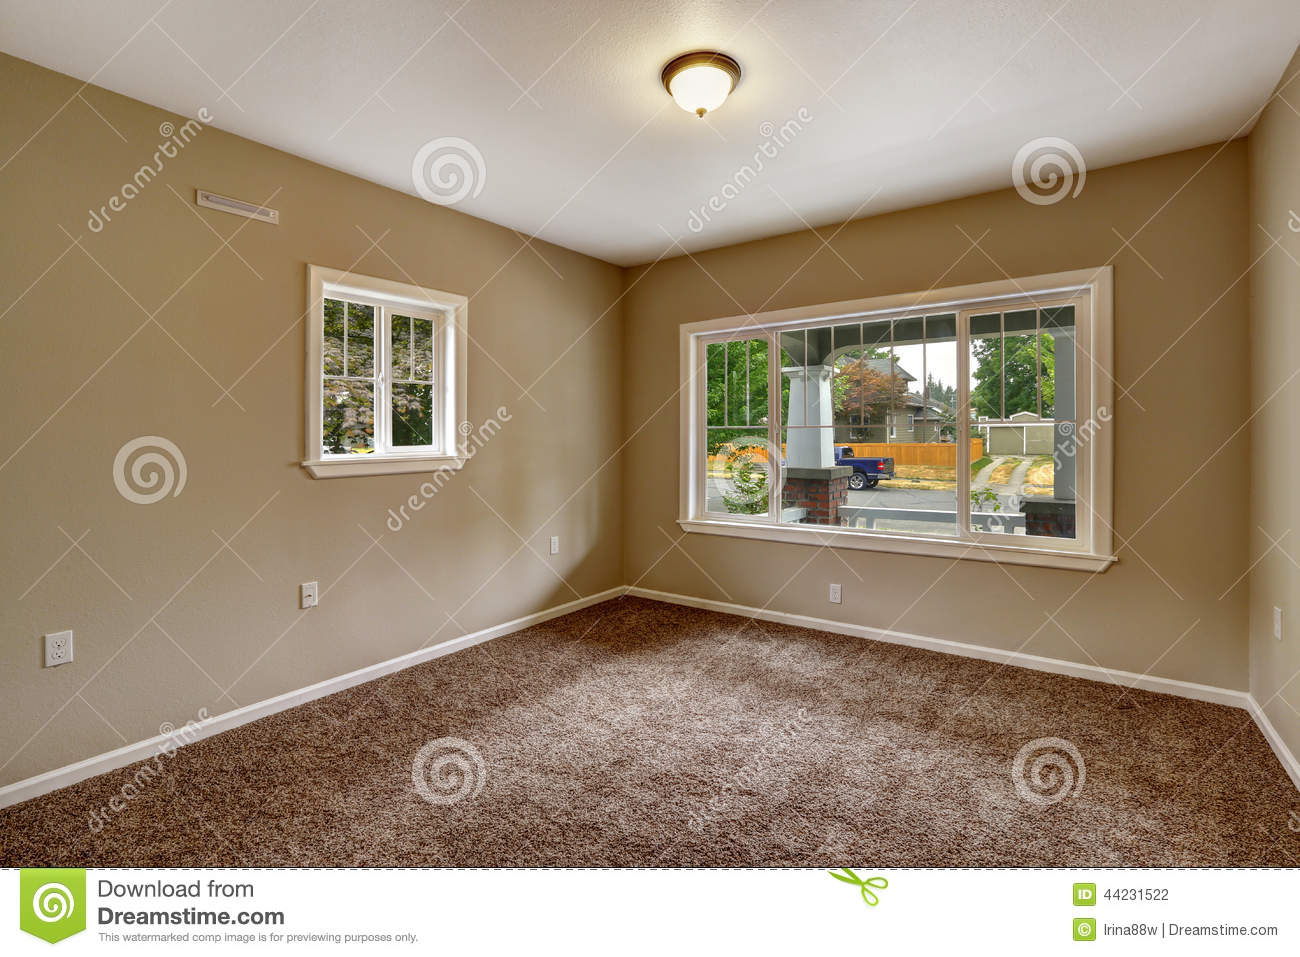 Slaapkamer Zandkleur Beige Empty Room With Brown Carpet Floor Stock Photo